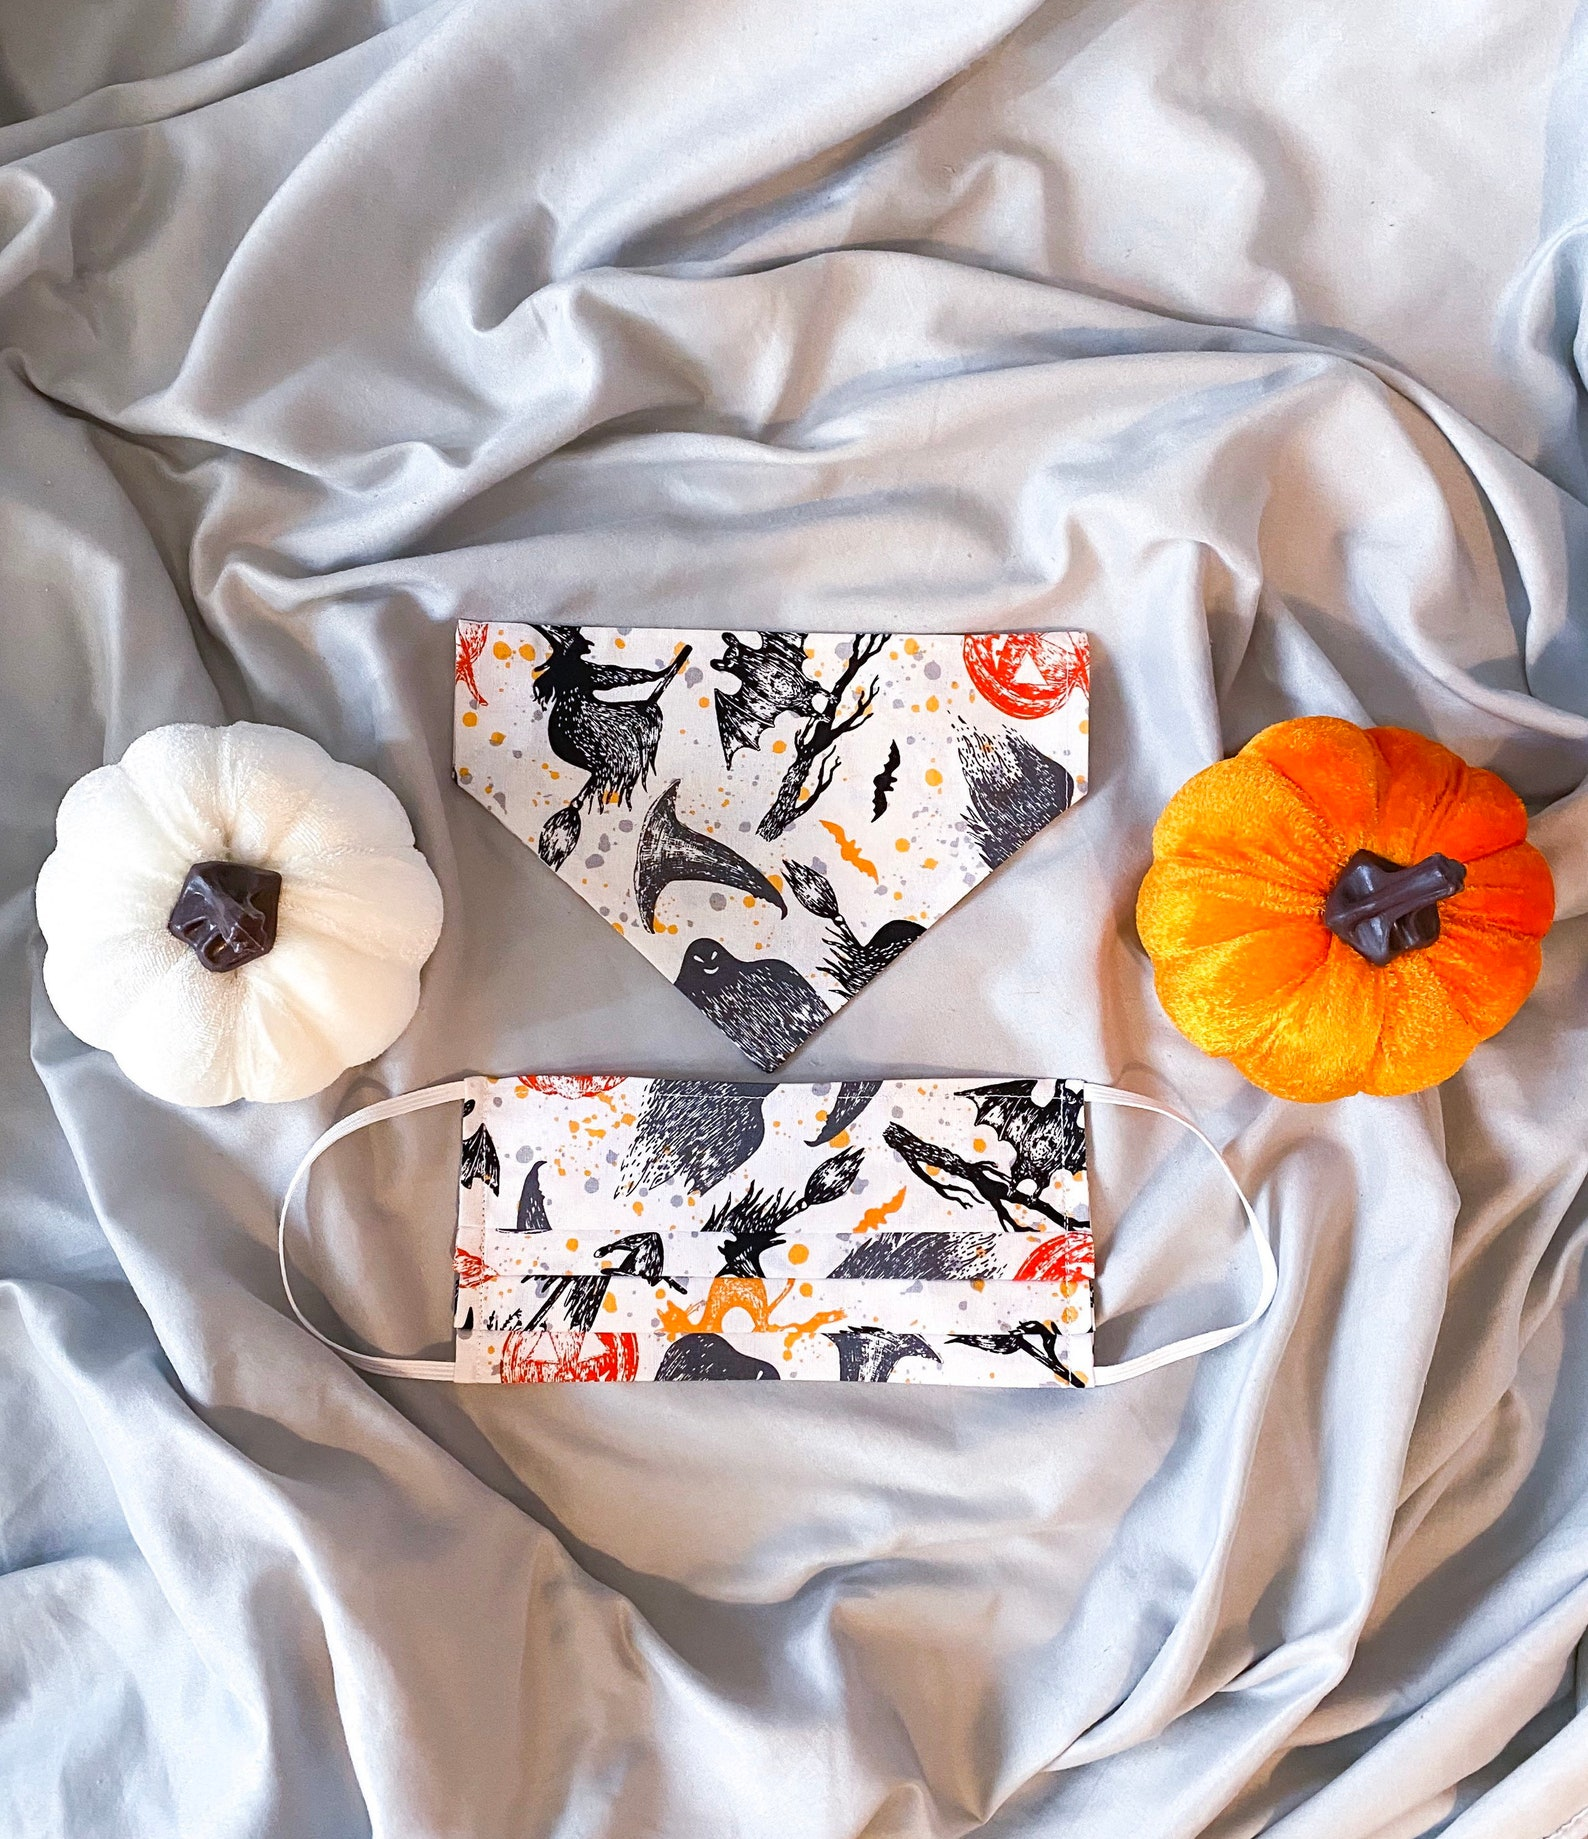 You and your pup can match in this bandana and face mask set with a print of witches, witches hat with orange pumpkins on white fabric. They lay on a light gray fabric between a white and orange pumpkin.